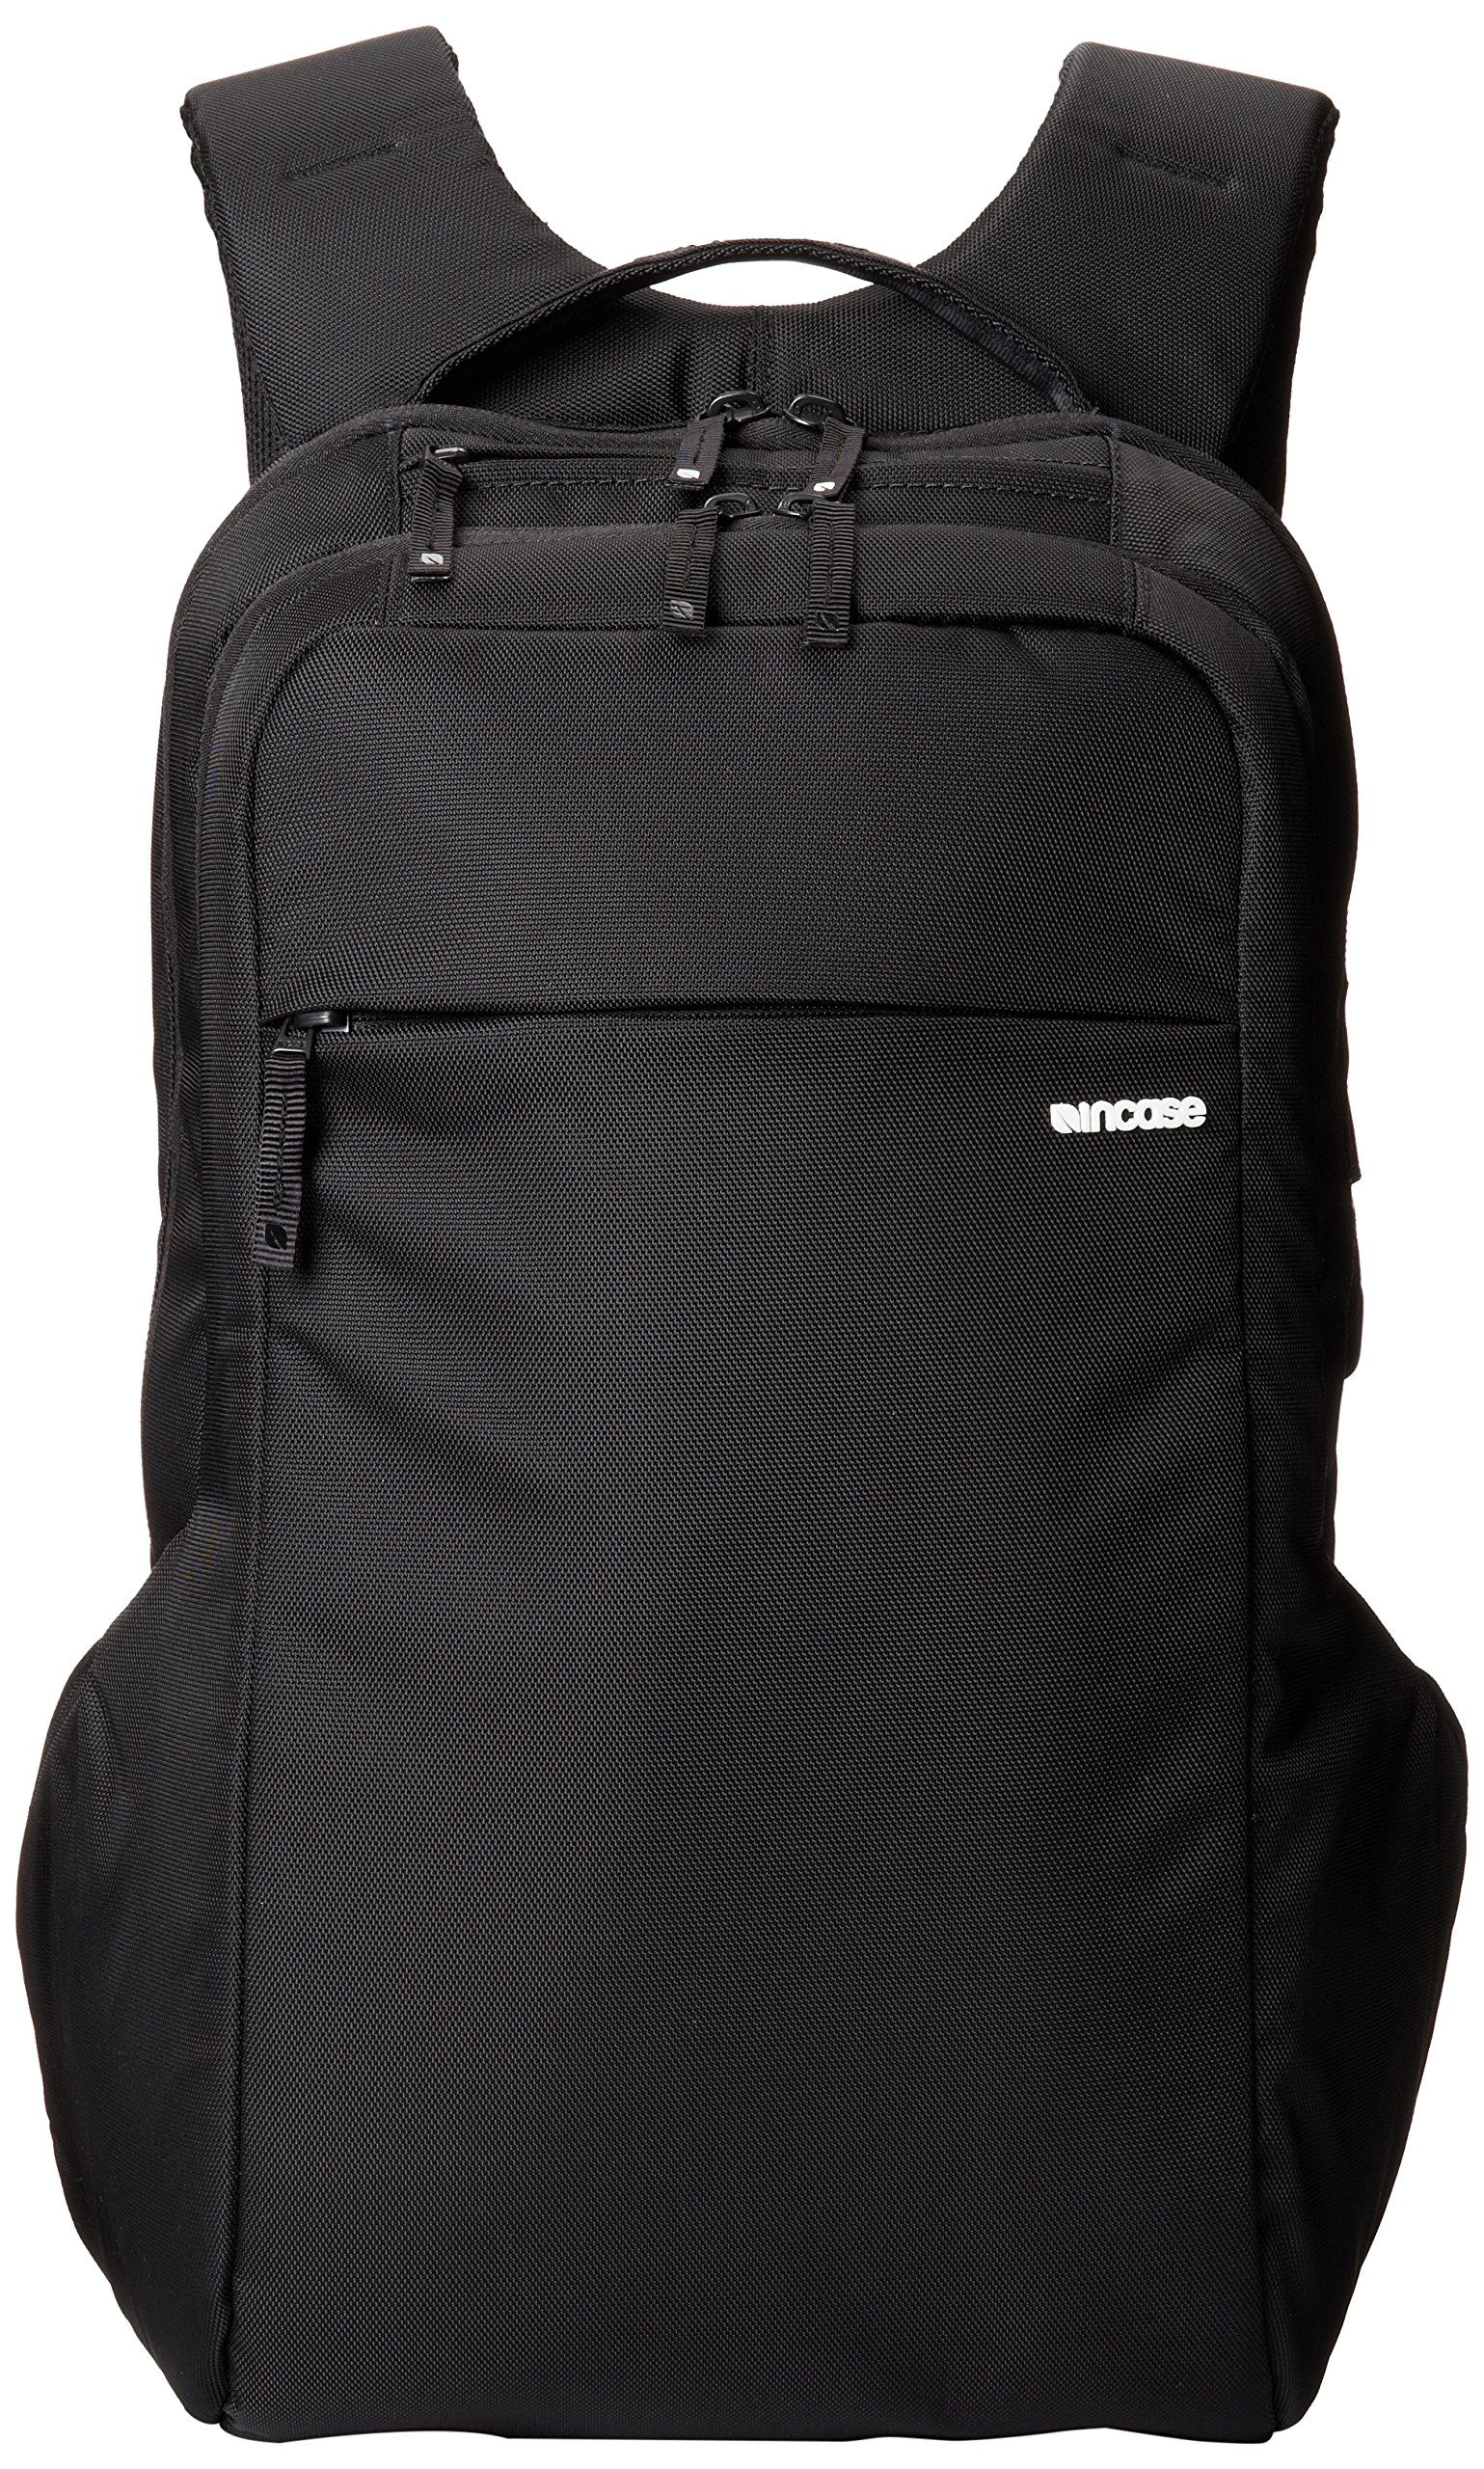 Incase Icon Slim Pack, 15.6'' Laptop Backpack, Black, CL55535 by Incase